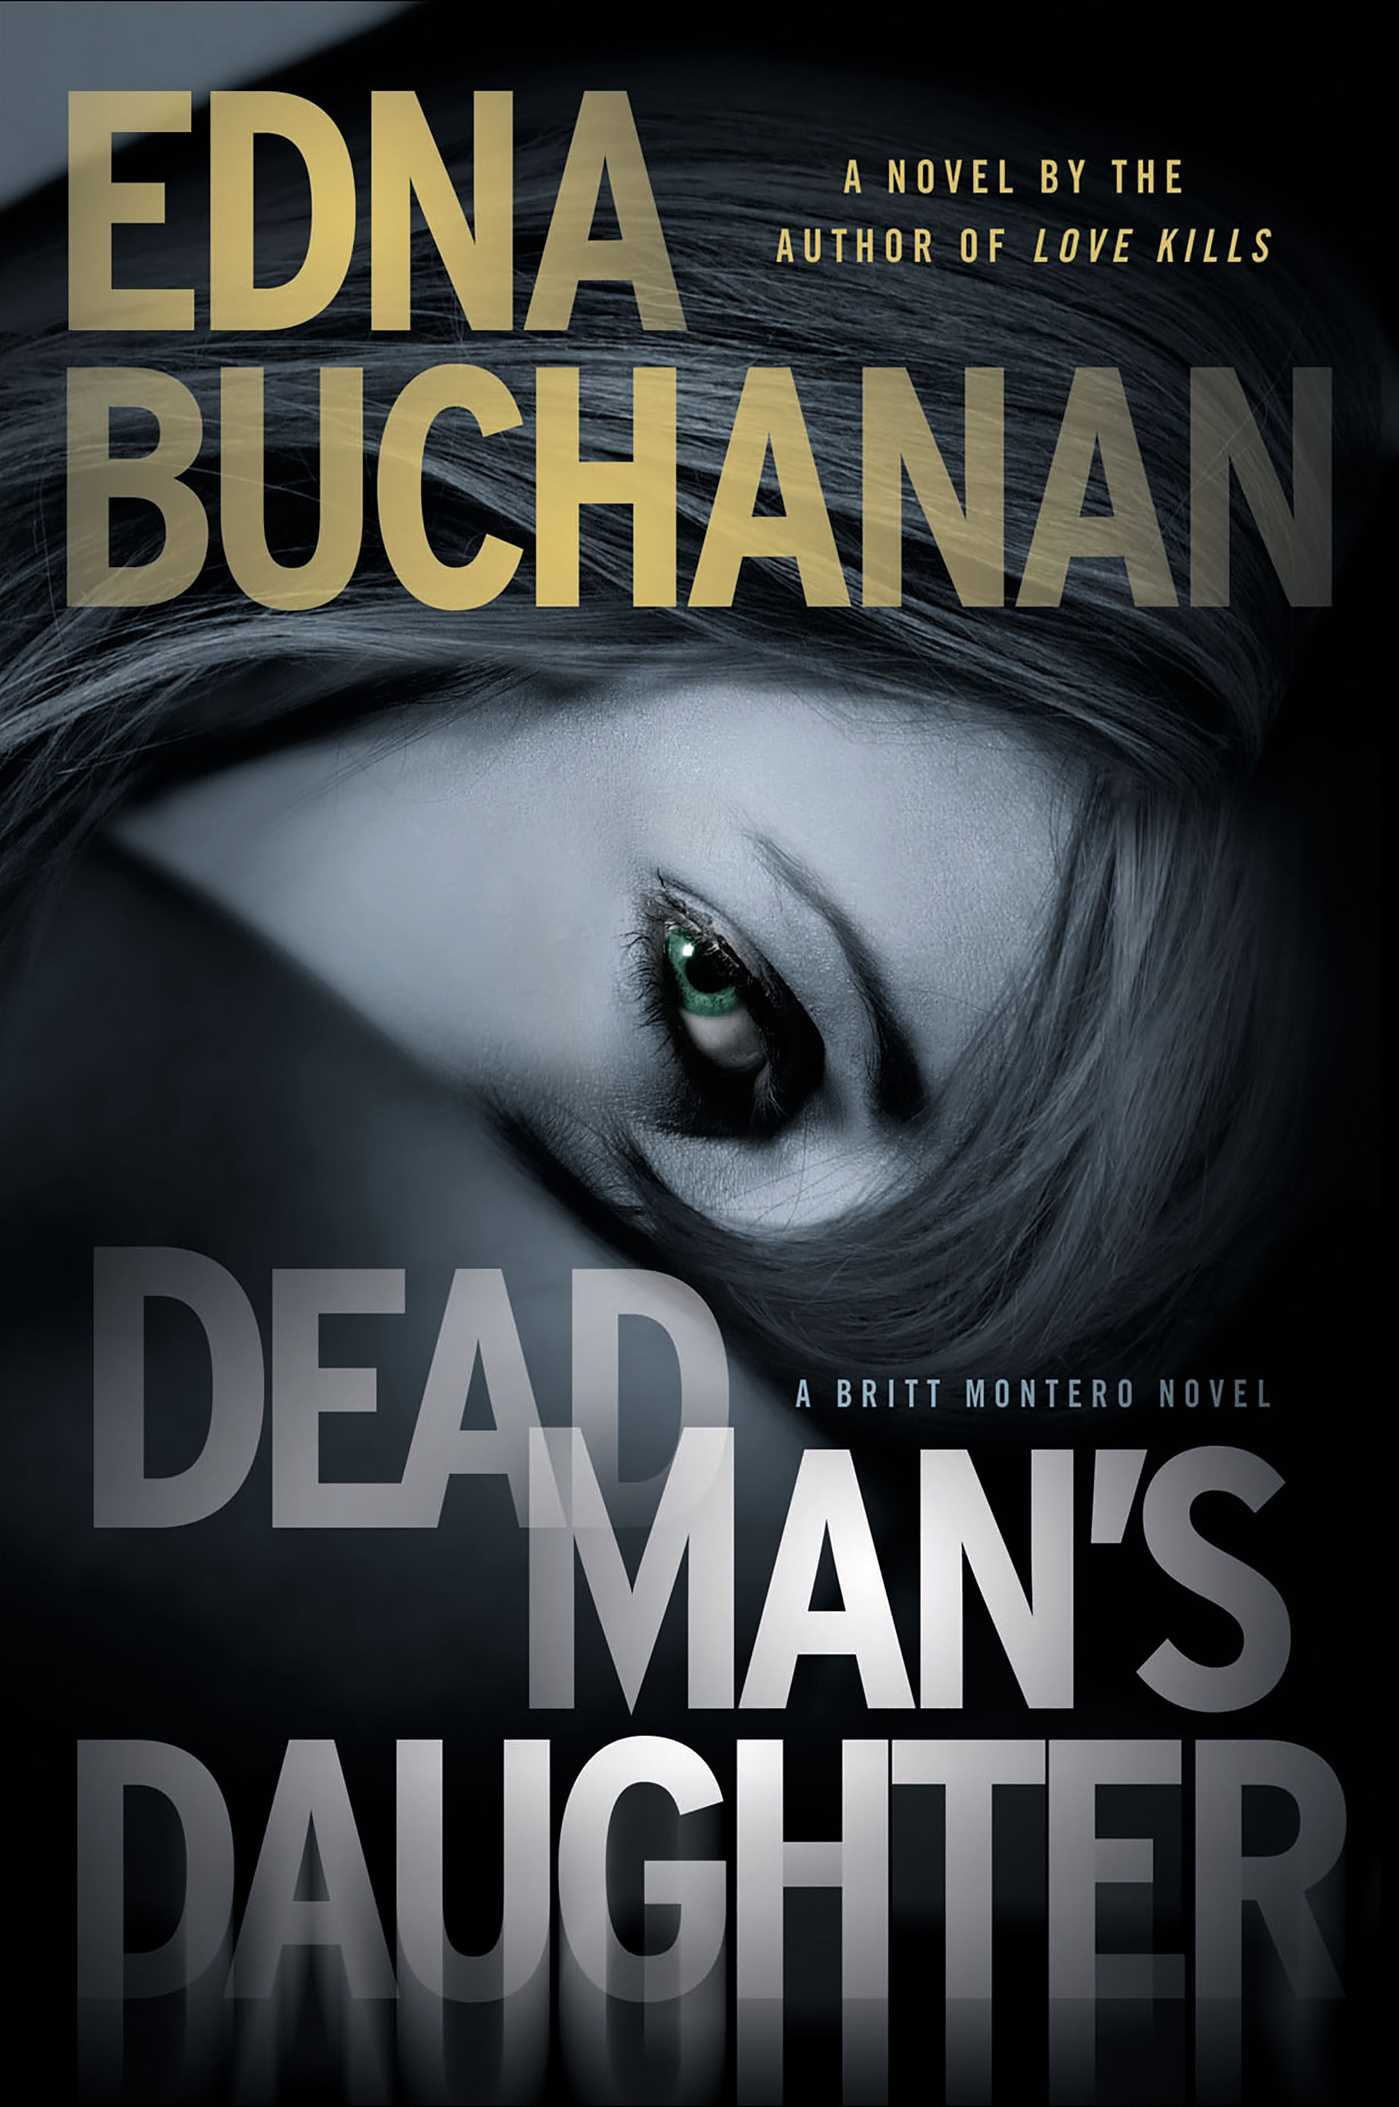 Dead-mans-daughter-9781439159194_hr